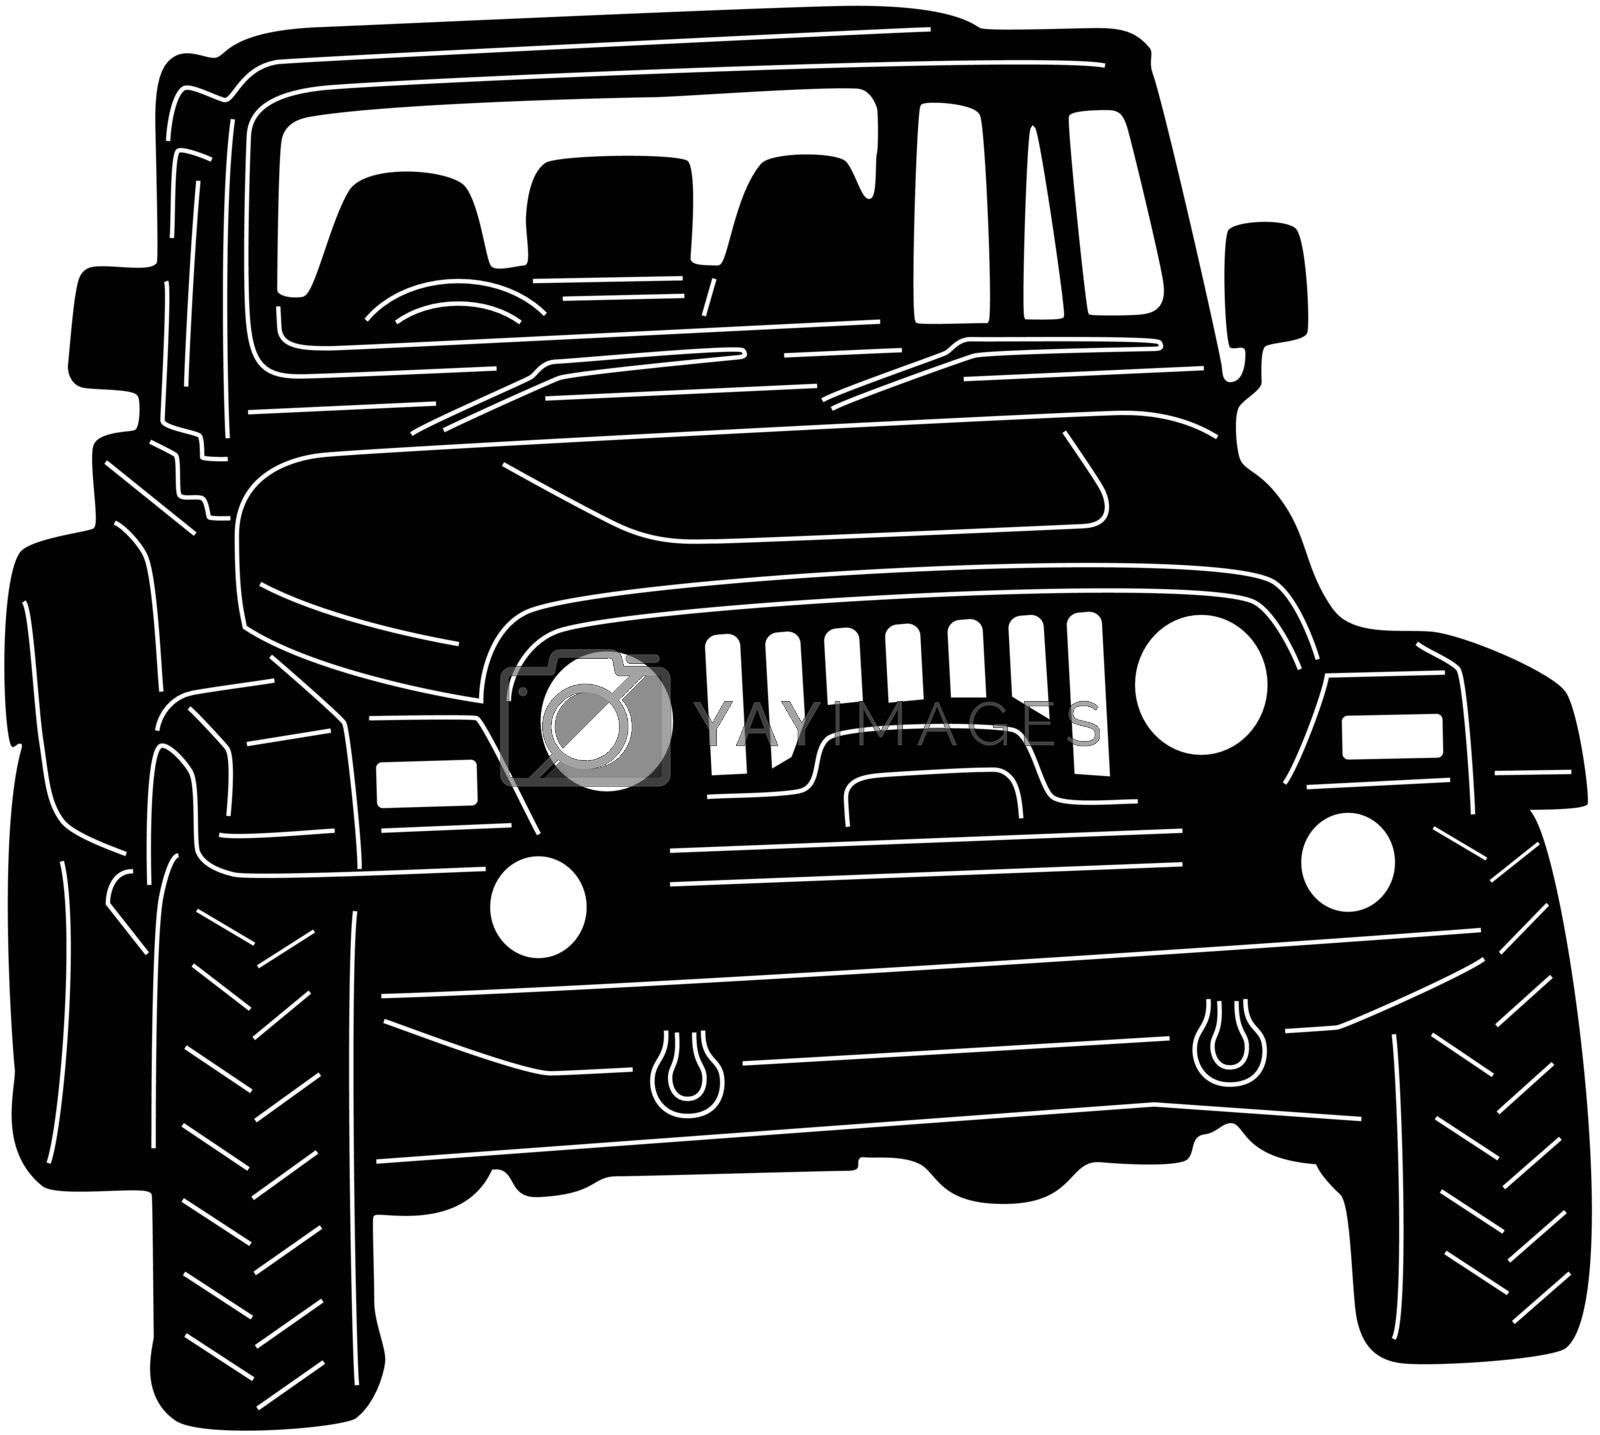 Royalty free image of 4x4 Truck Silhouette by silverrose1